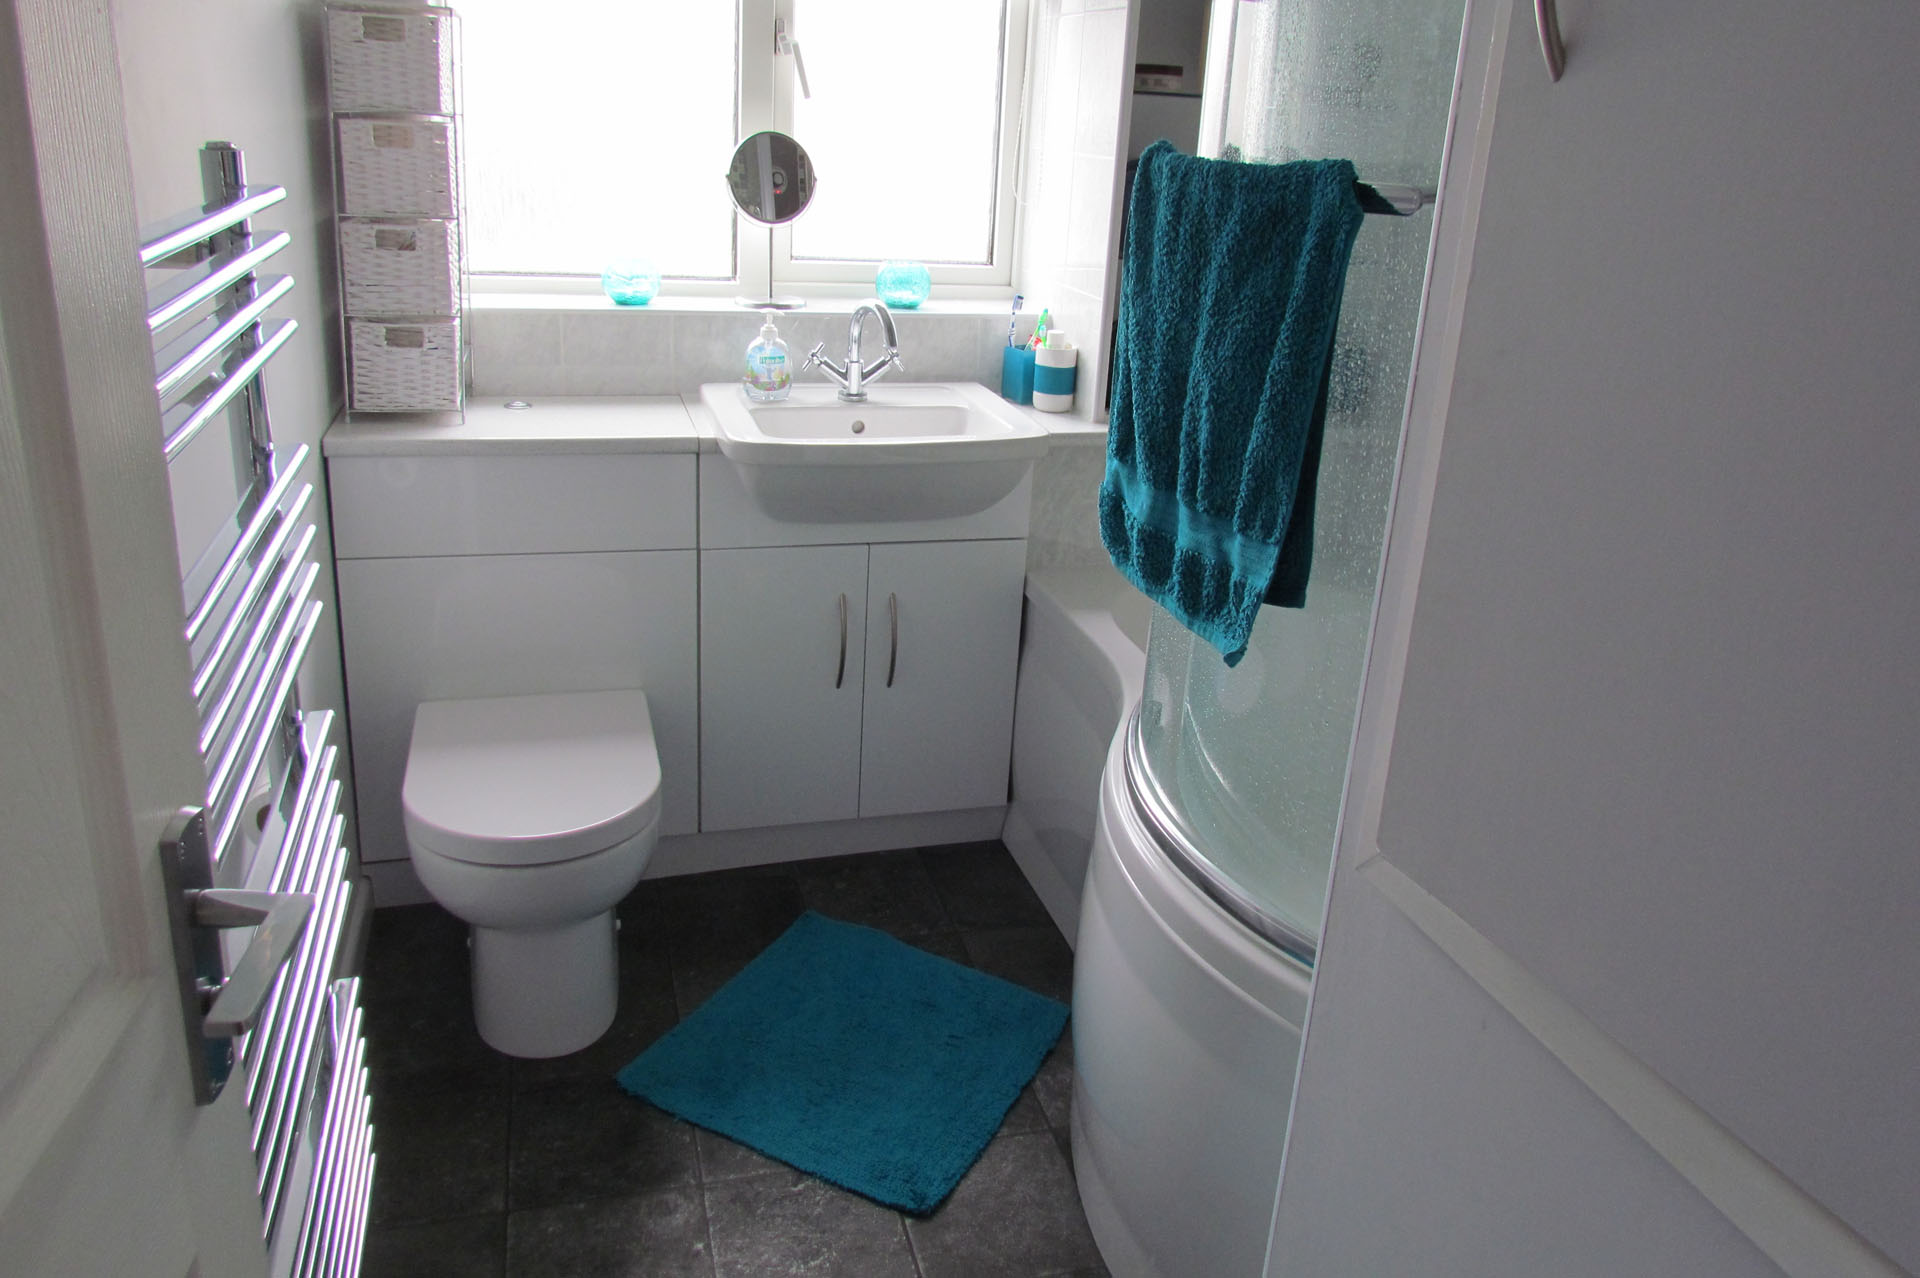 Phil G Webber Bathroom And Bedroom Fitters - I need a new bathroom